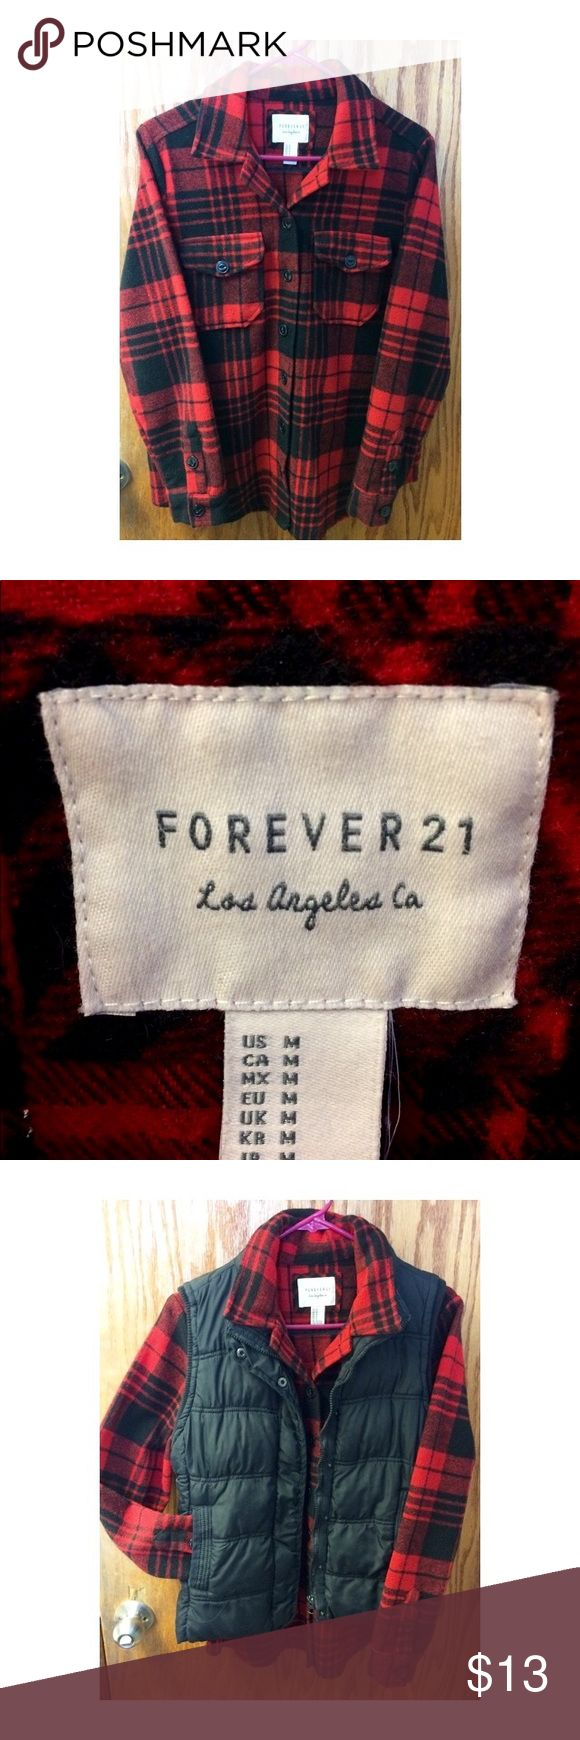 Forever 21 Flannel Button Up Women's black and red buffalo check flannel button up. Brand: Forever 21. Size: M. Material: 79% polyester, 16% wool & 5% acrylic. Worn only a handful of times. Ladies, fashion fades but flannel is forever!   NOTE: Black vest featured in photo is NOT for sale; the picture was posted to provide style inspiration. Forever 21 Tops Button Down Shirts